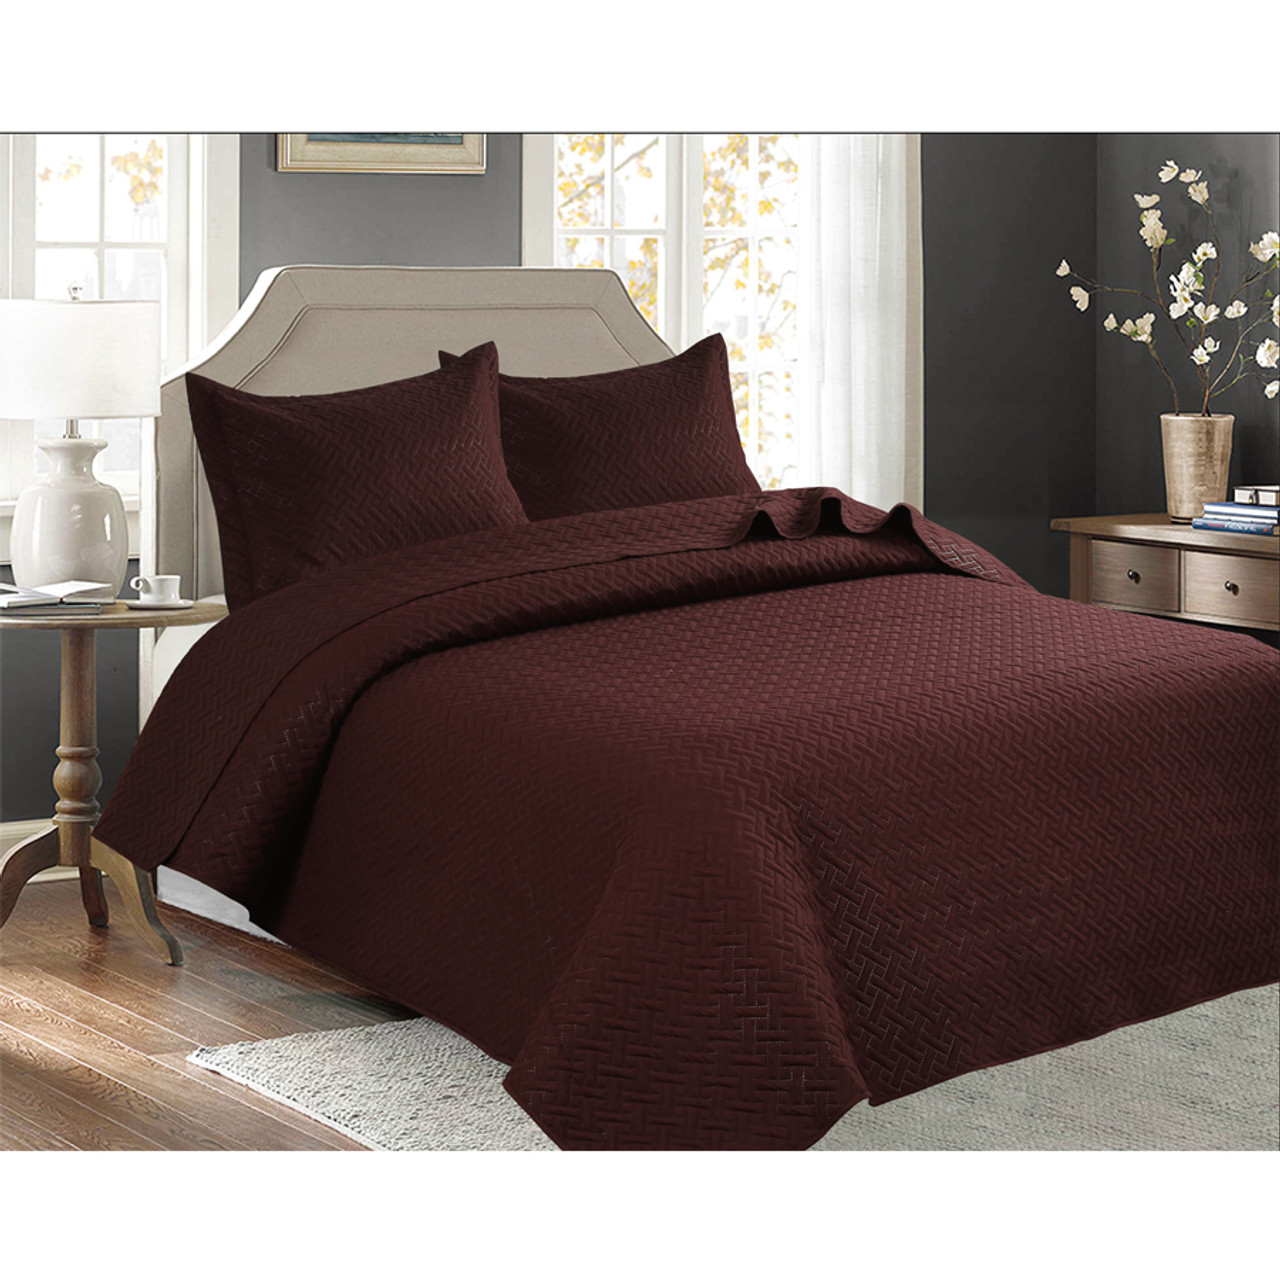 3 PCS Squared Stitched Pinsonic Reversible Oversized Bedspread Brown Color